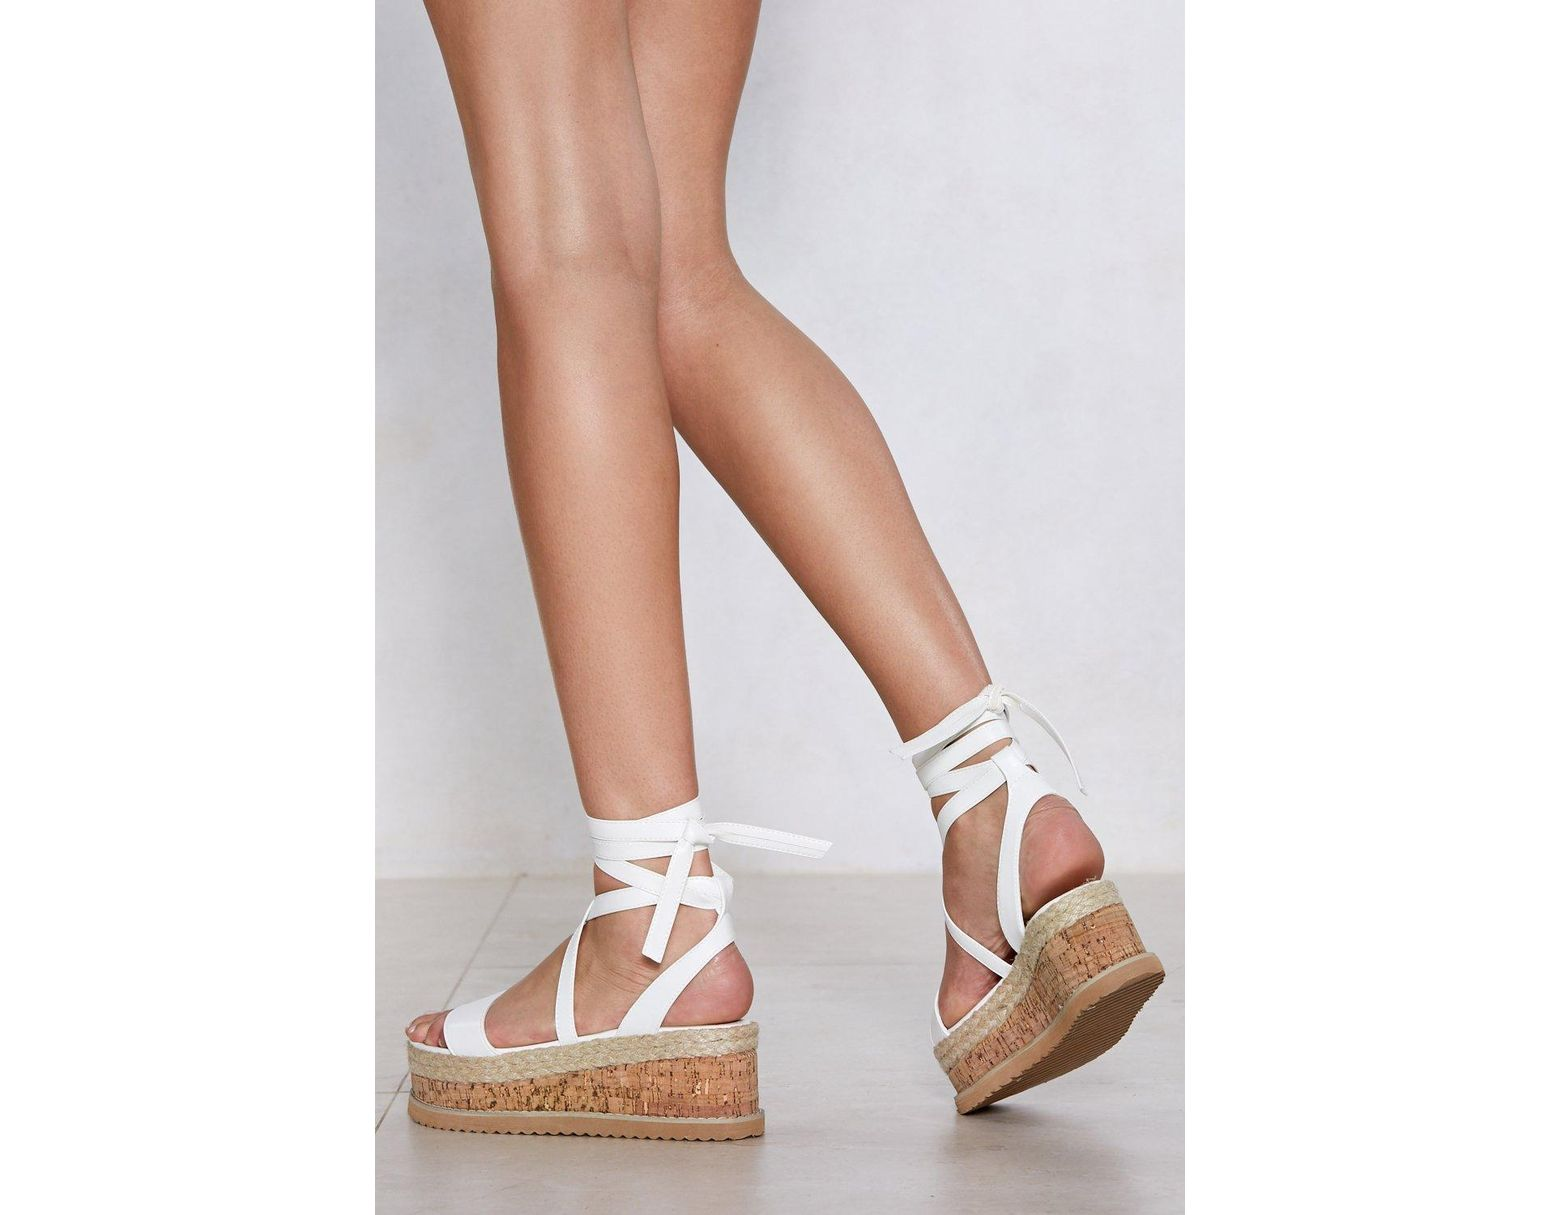 4382cfe4c Lyst - Nasty Gal Enough With The Cork Platform Sandal in White - Save 29%